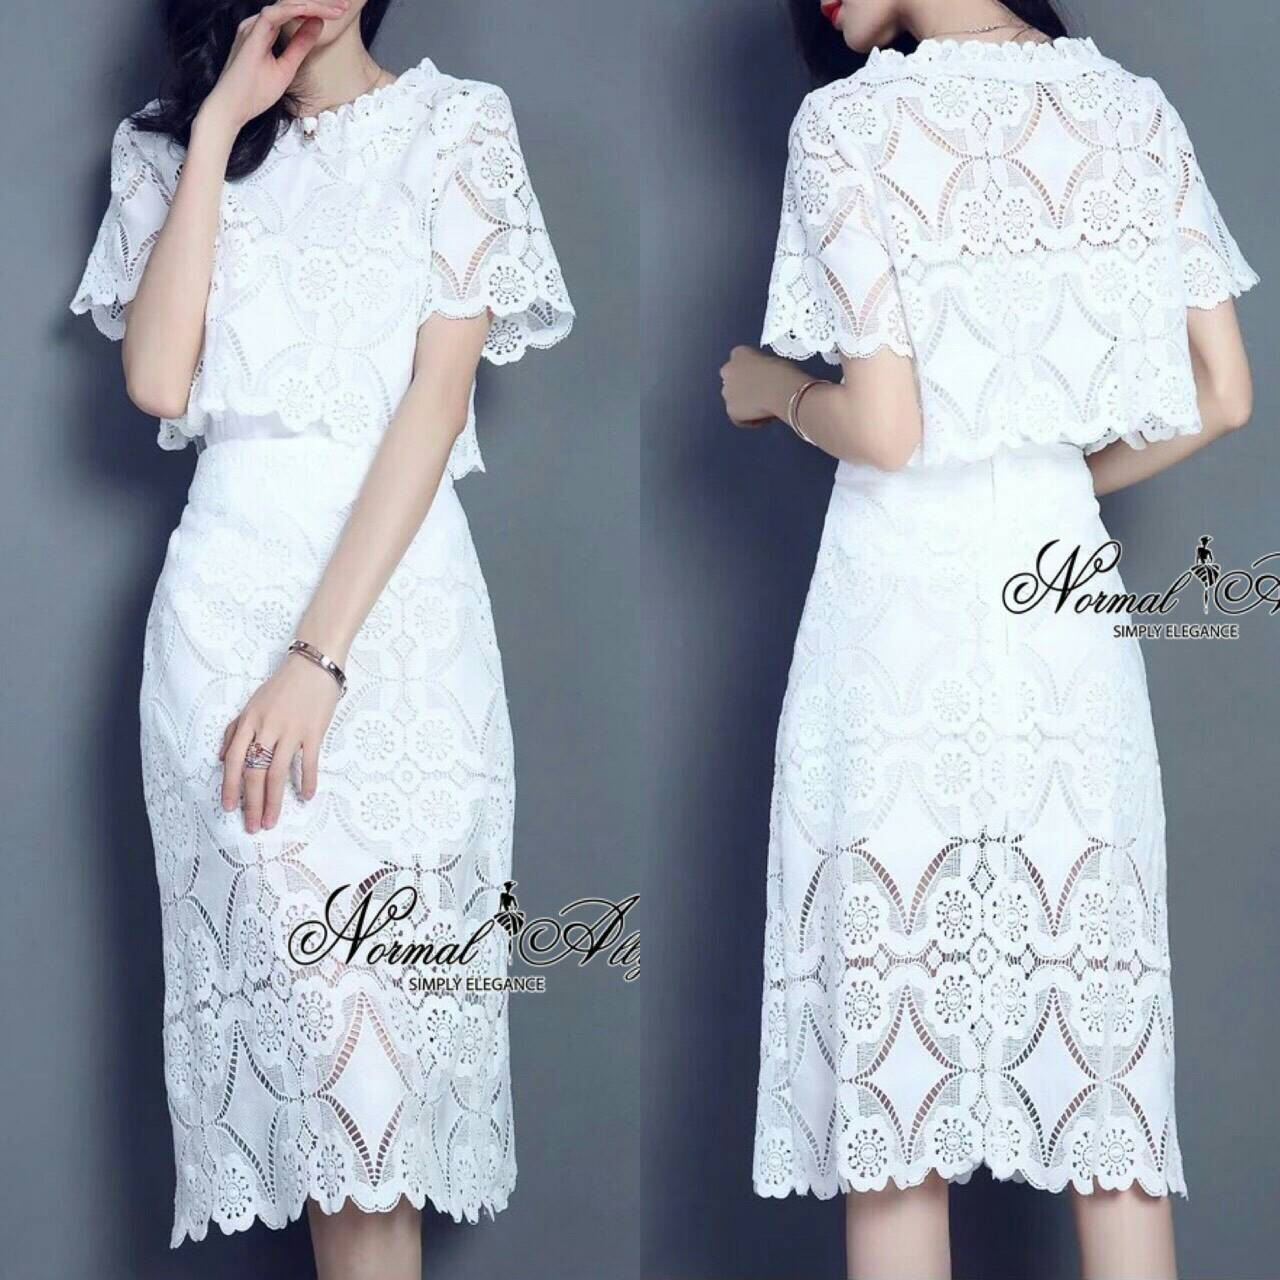 Normal Ally Present Boutique Lace White Shirt and Skirt